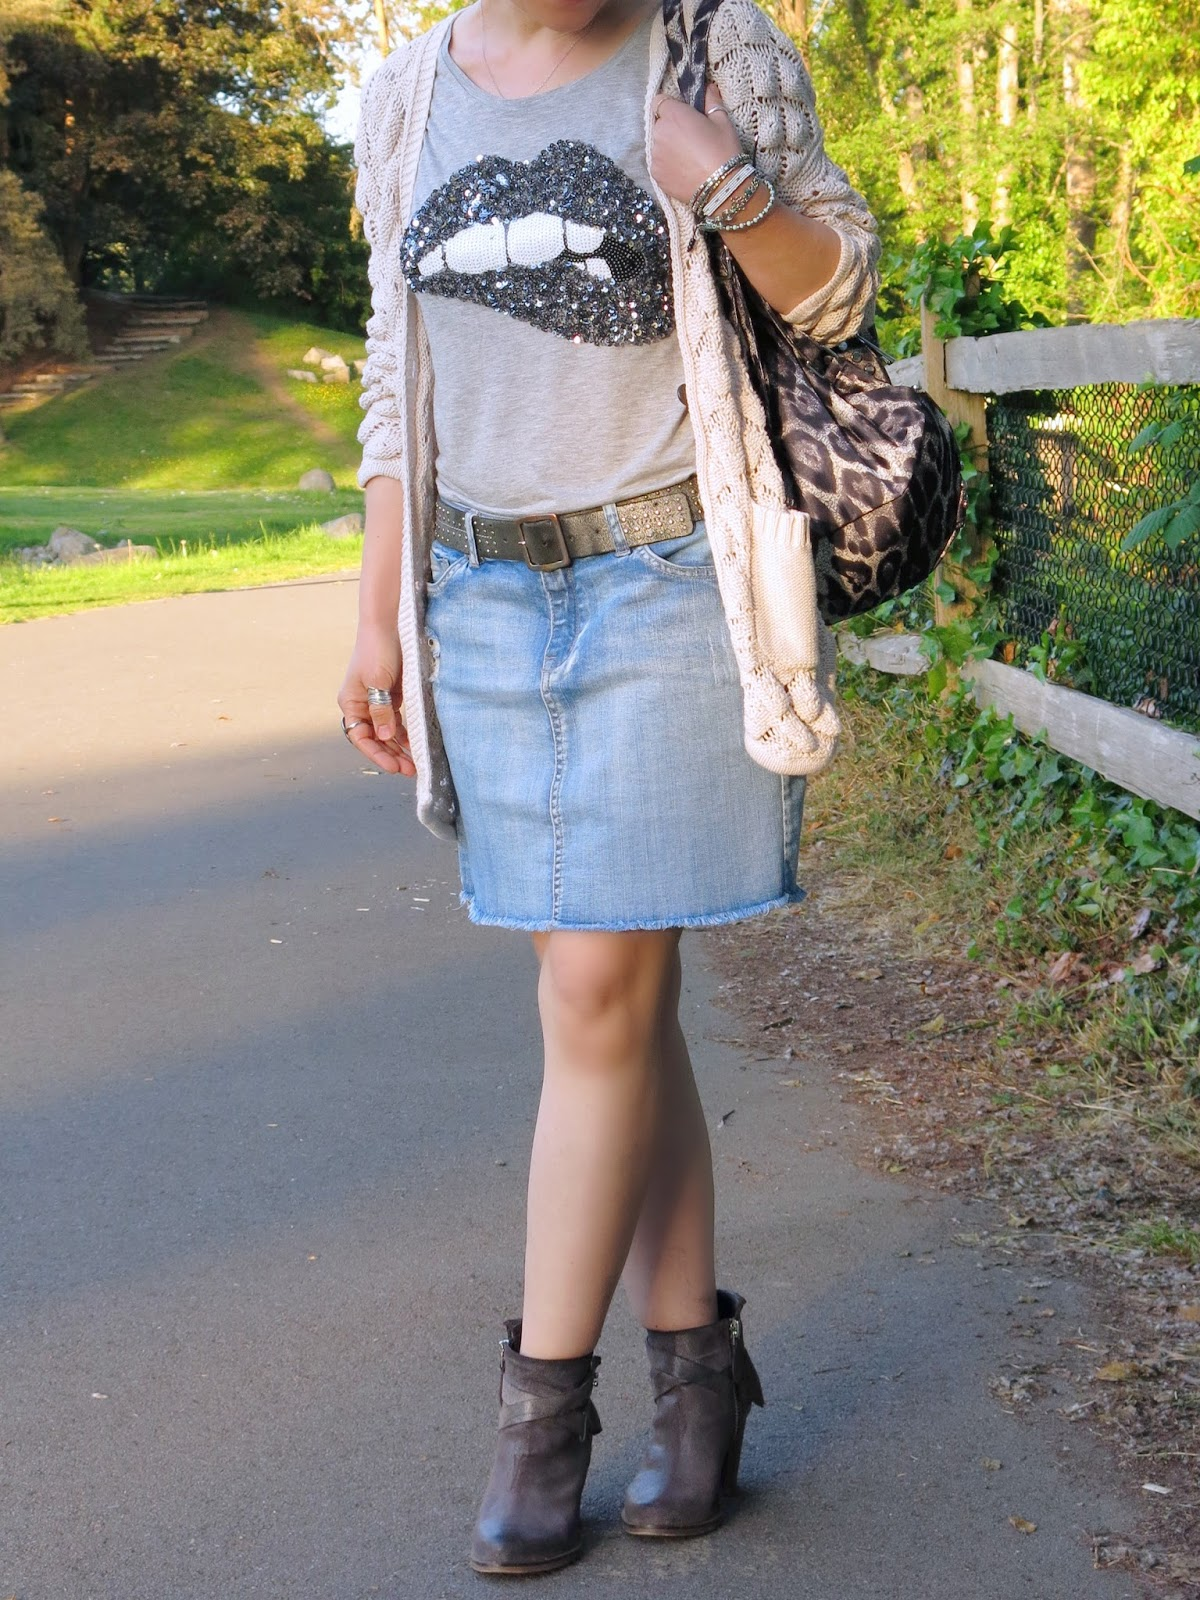 styling a sequinned t-shirt with a cut-off denim skirt, cardigan, and booties